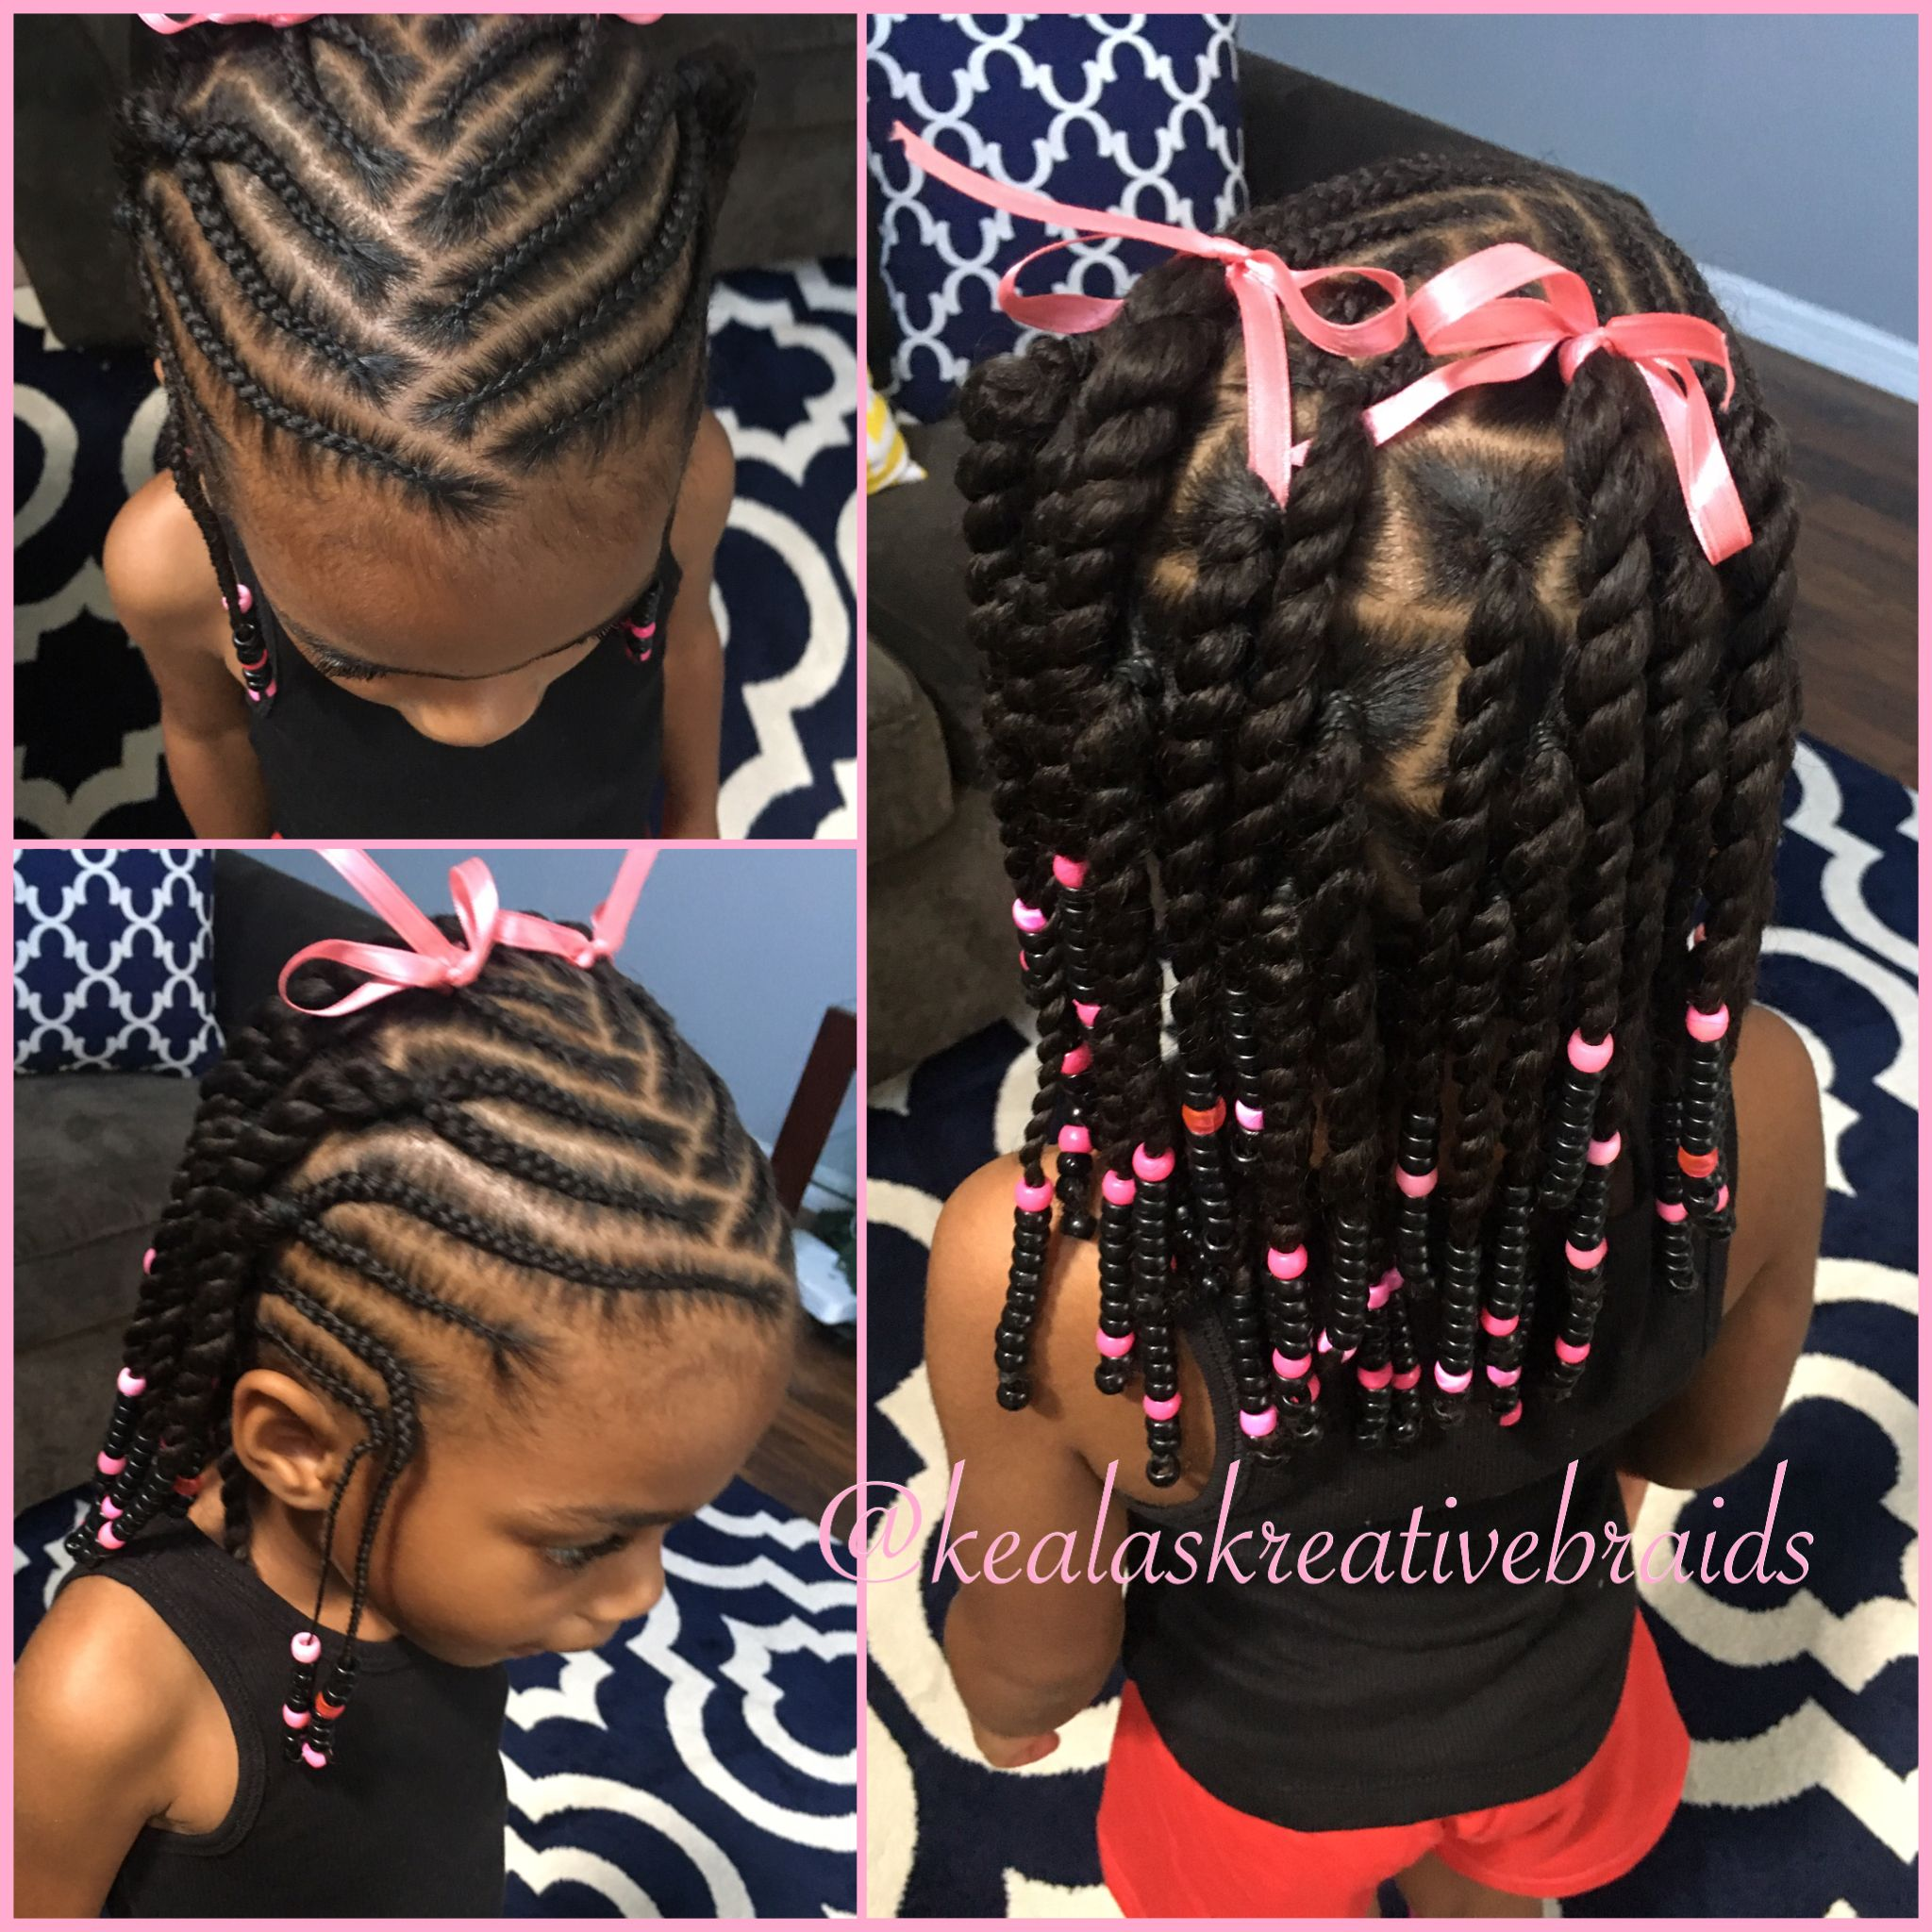 Little Girl Hairstyle Beads And Braids Lil Girl Hairstyles Kids Hairstyles Kids Braided Hairstyles